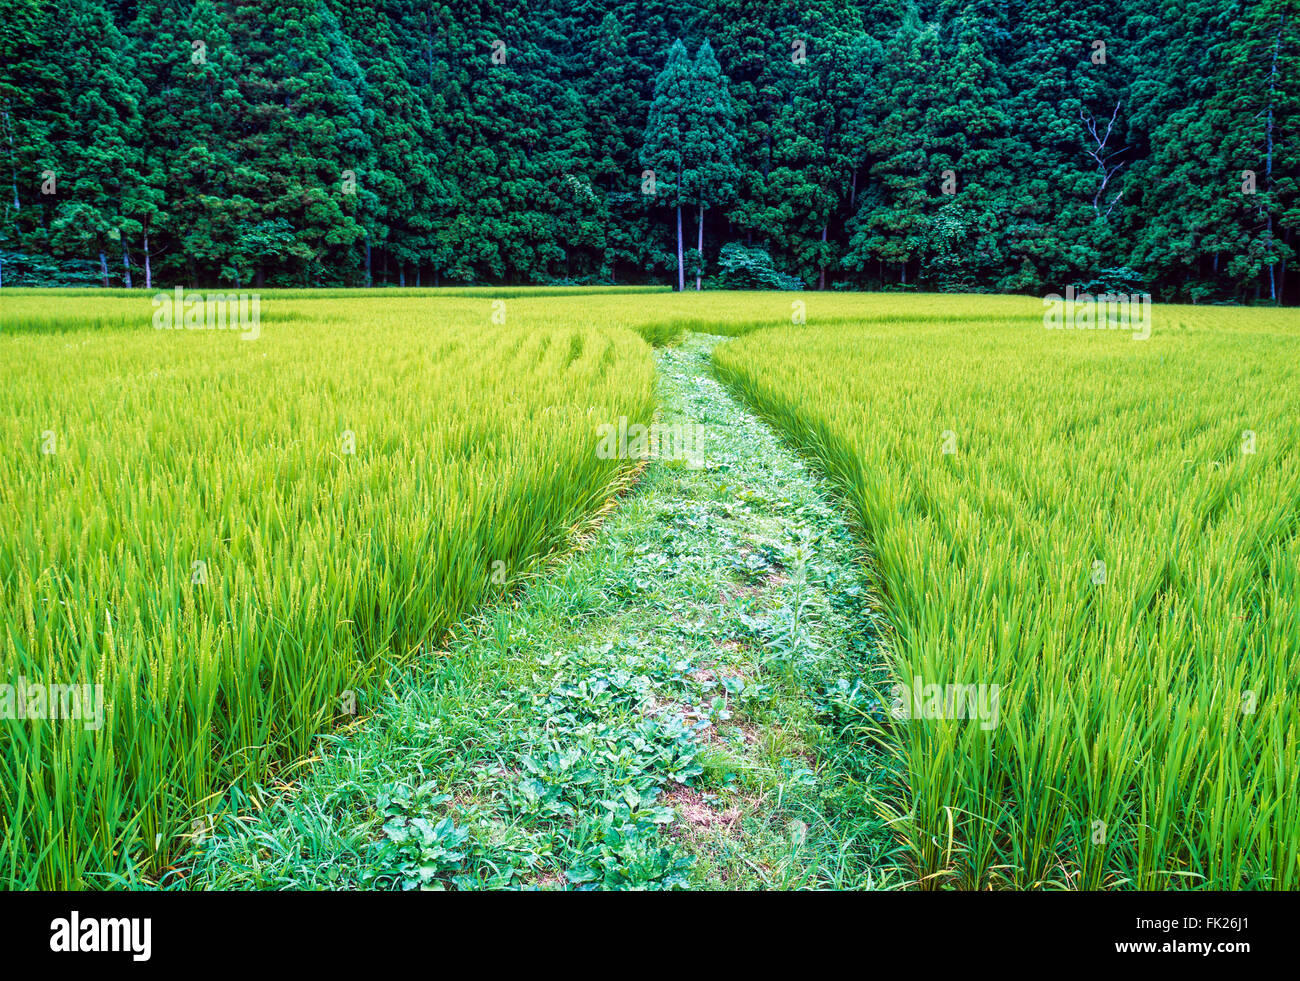 Un champ de riz dans la région de Tohoku au nord de Sendai au Japon Photo Stock